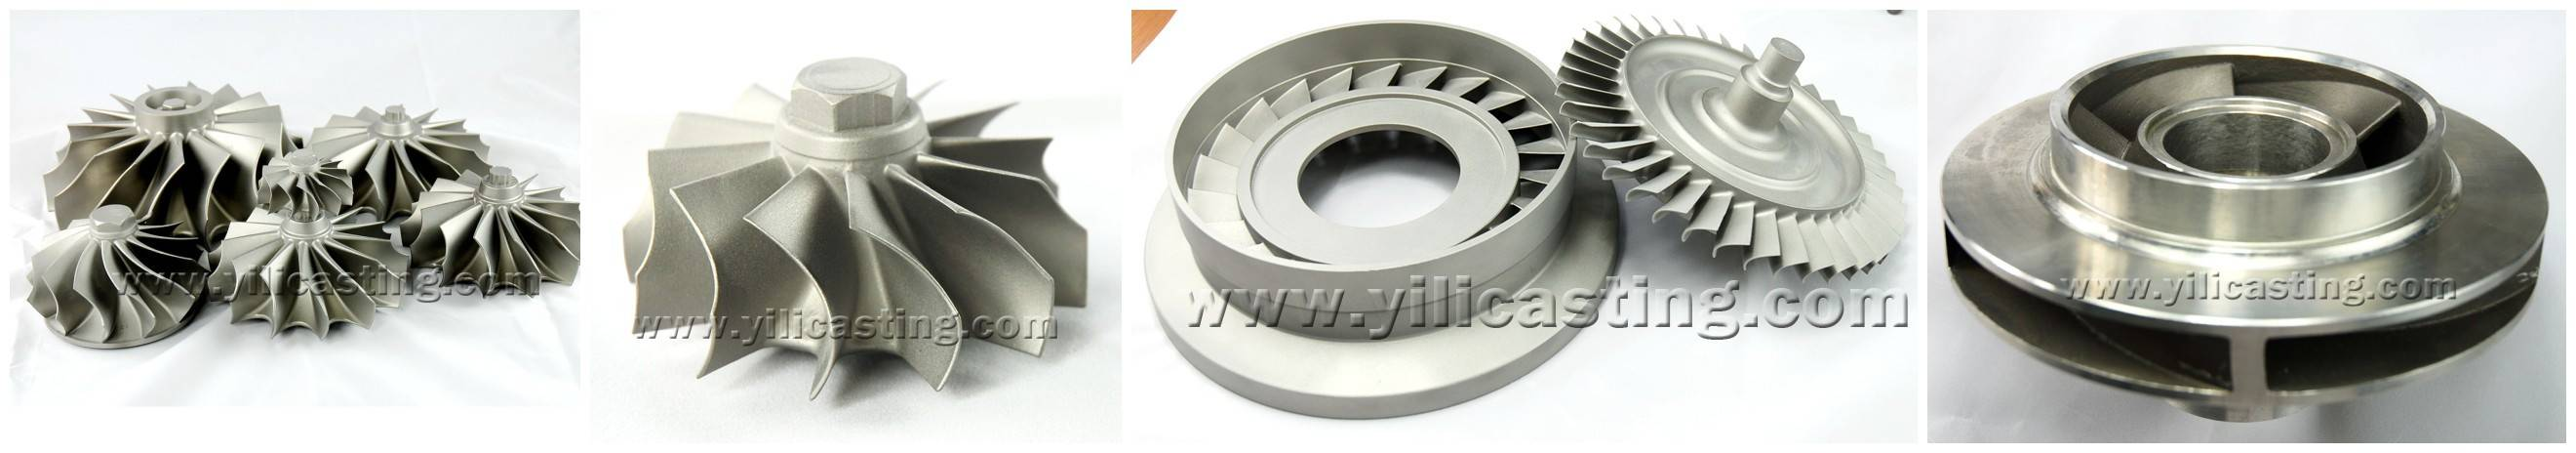 turbine wheel used for car and truck turbocharger parts